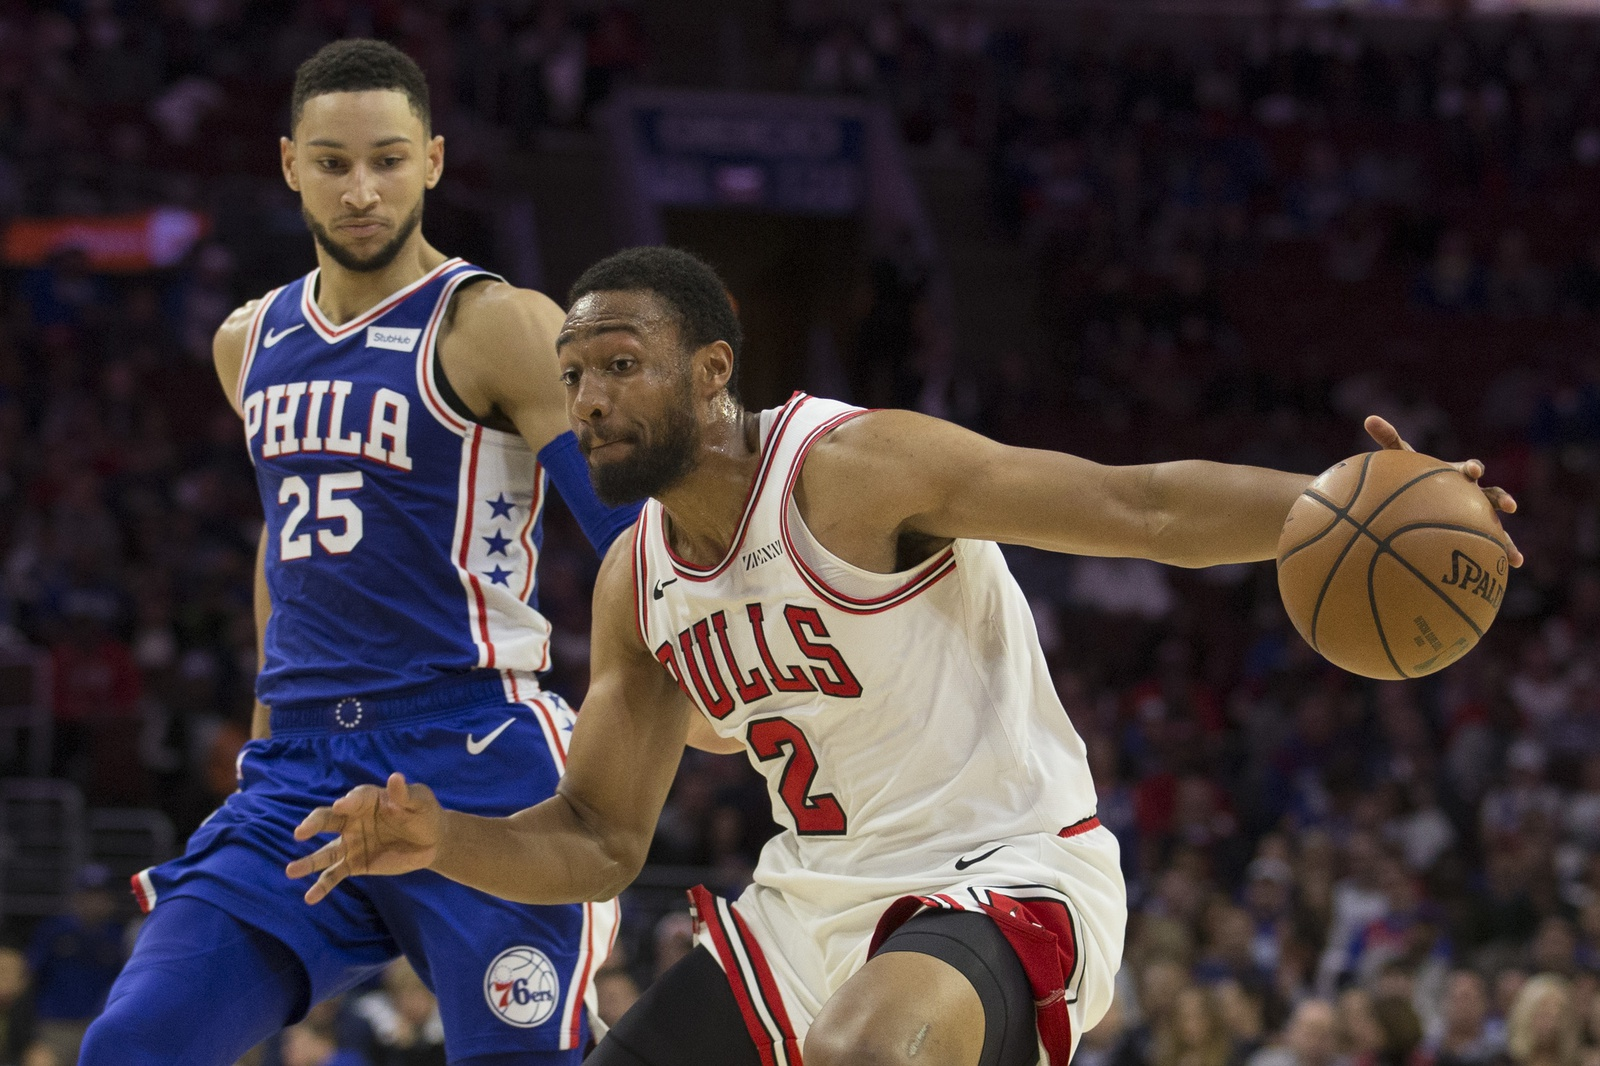 Jabari Parker #2 of the Chicago Bulls drives to the basket against Ben Simmons #25 of the Philadelphia 76ers in the fourth quarter at Wells Fargo Center on October 18, 2018 in Philadelphia, Pennsylvania. The 76ers defeated the Bulls 127-108.